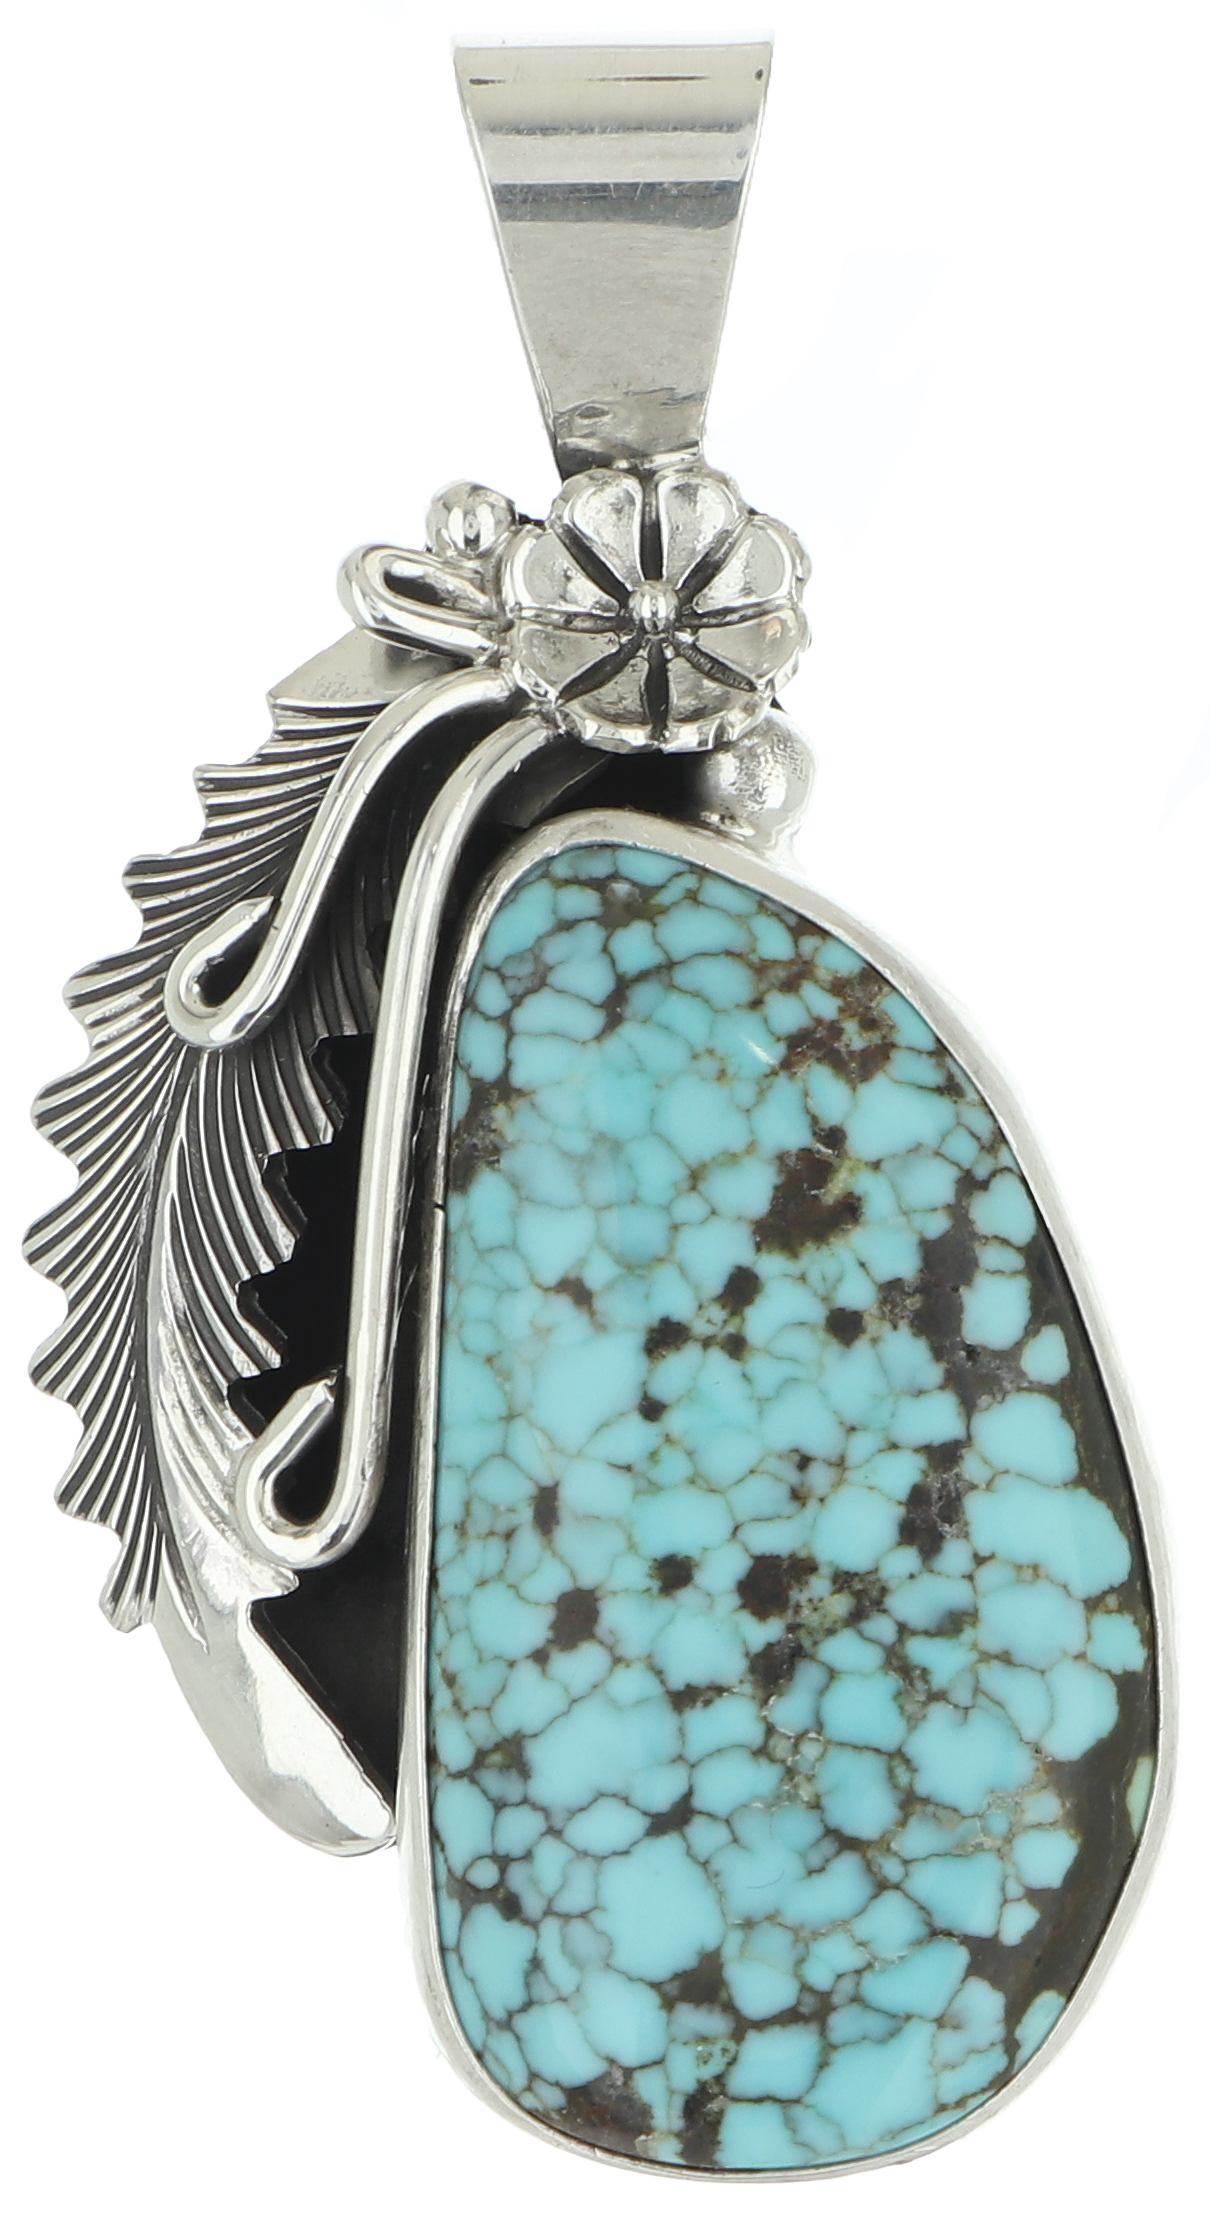 ITEM 147 25x18mm Lavendar Turquoise Pendant by Mirths MInerals